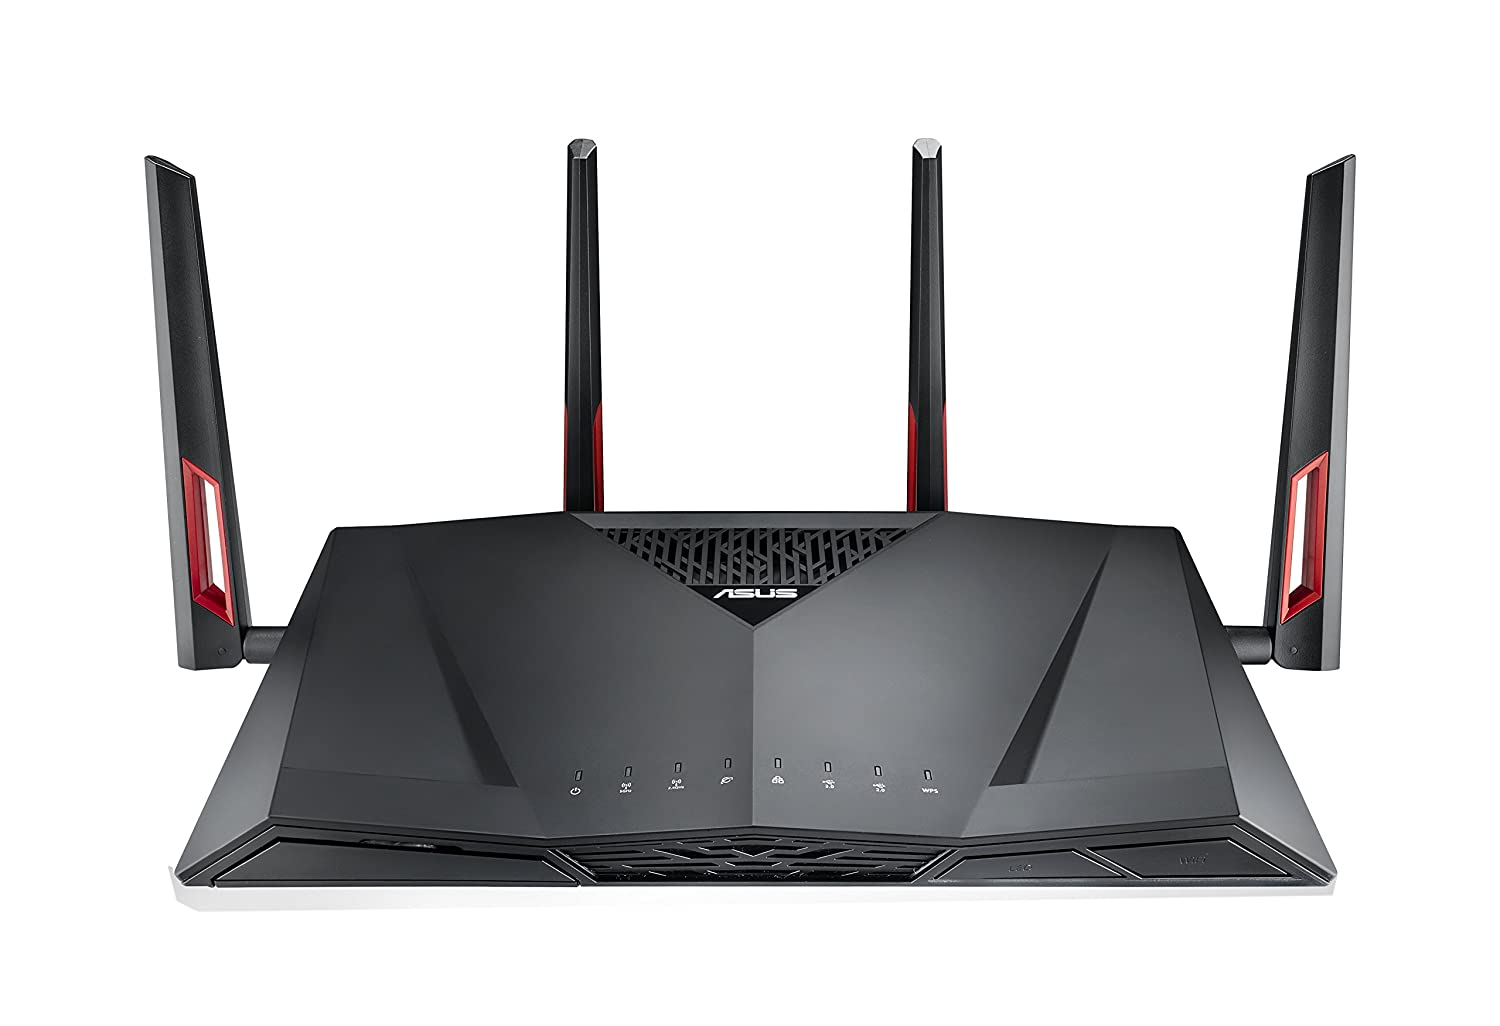 Best Wireless Routers 2022-